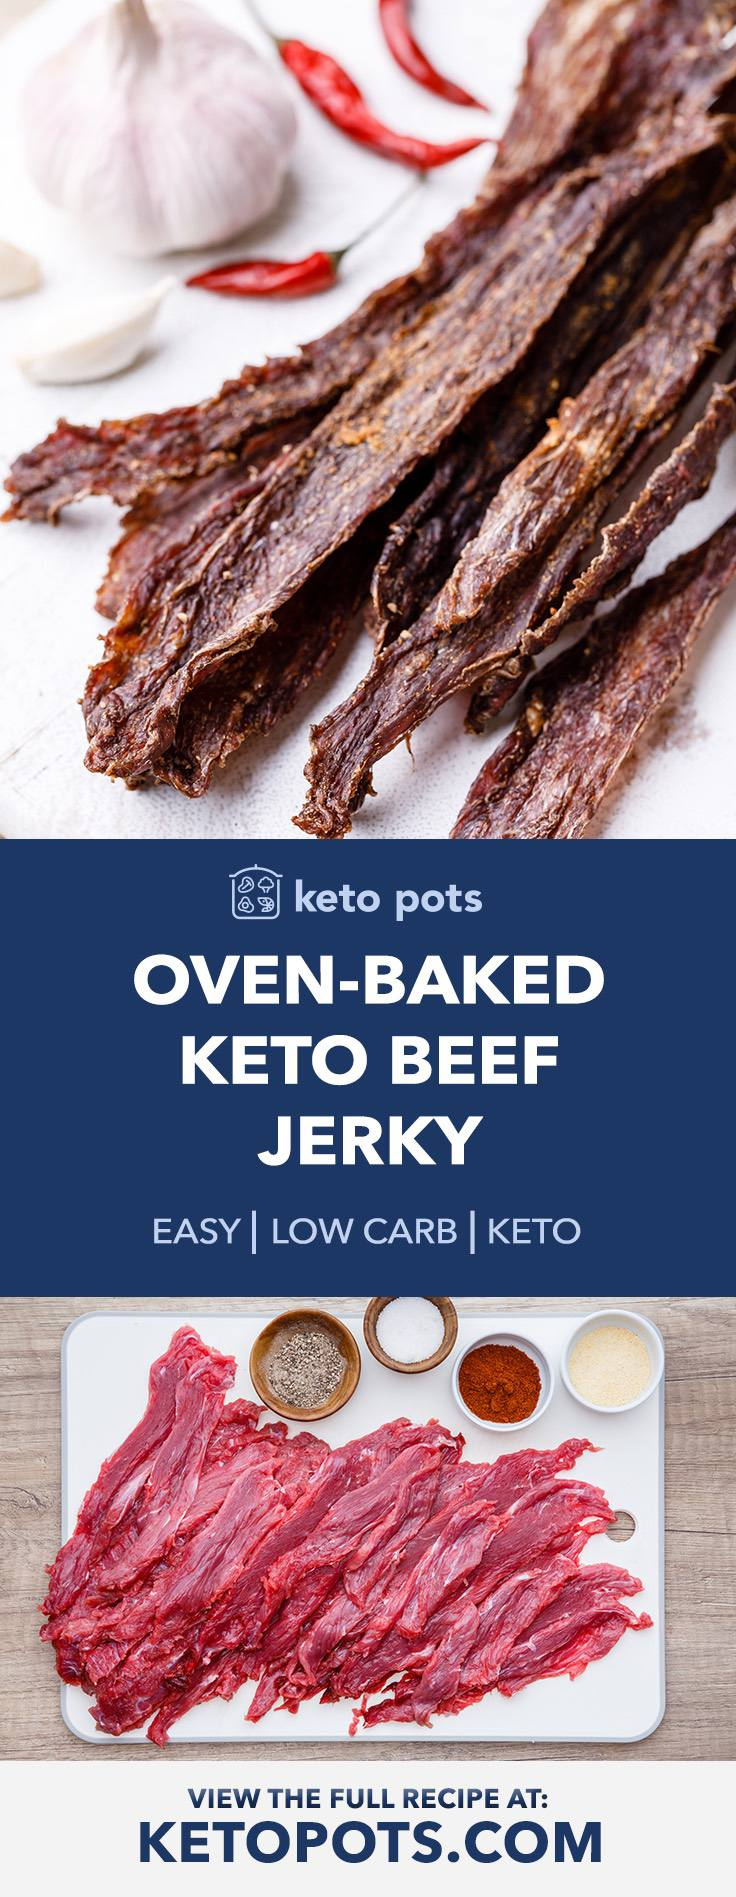 Oven-Baked Low Carb Keto Beef Jerky